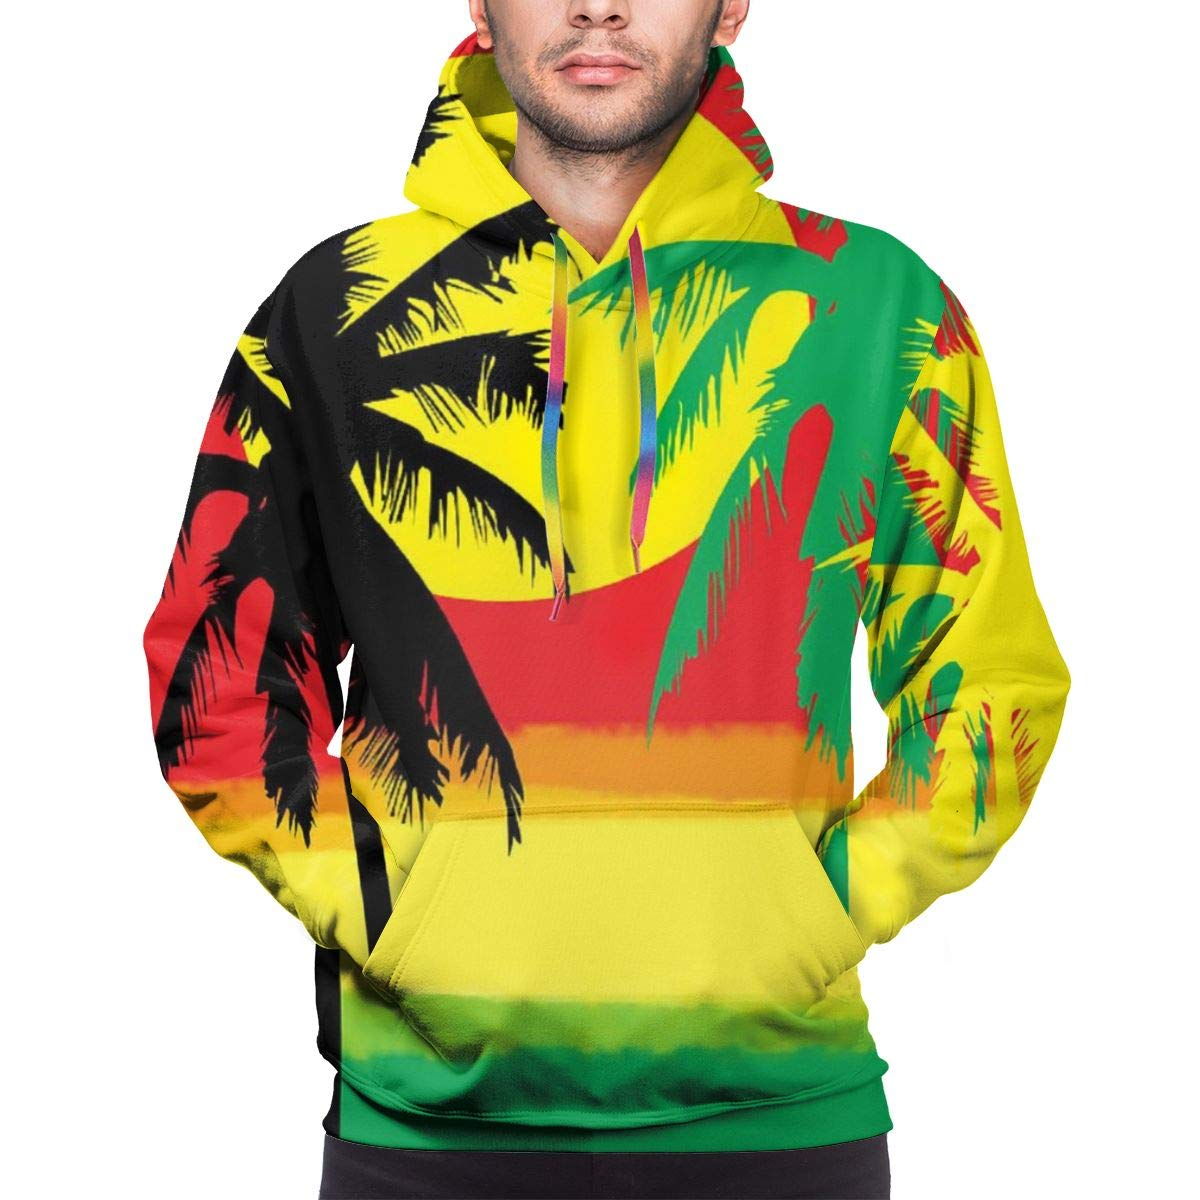 MAYUES Grill Tree Island Sunset Men's Hoodie Transfer Printing Men's Athletic Hoodies Daily Wearing for School Office S by MAYUES